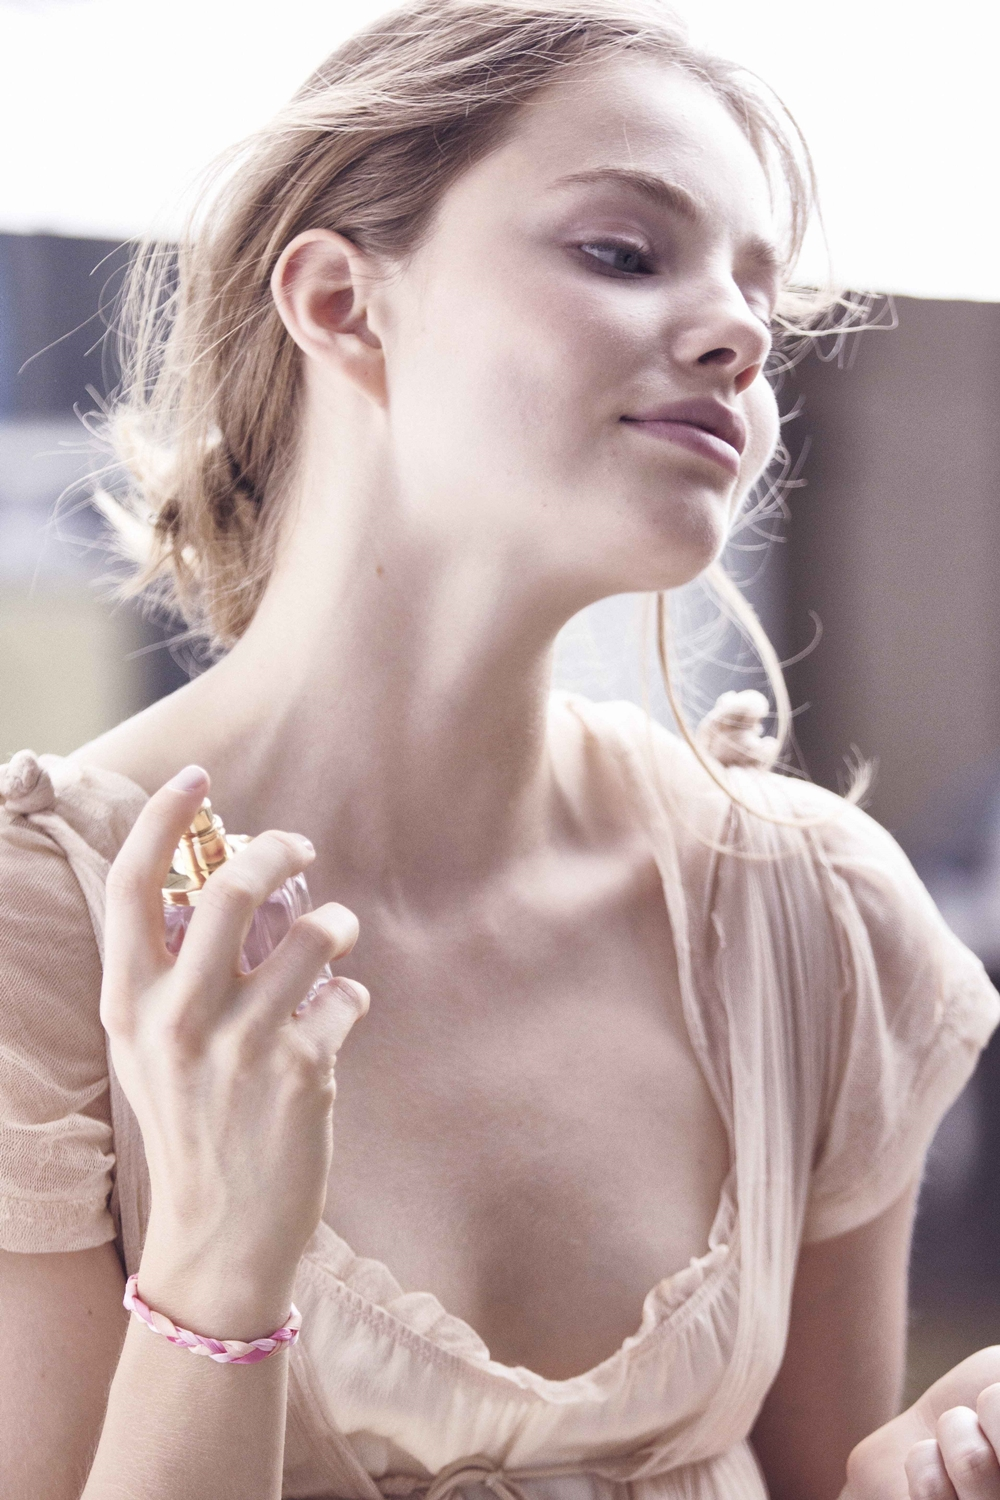 Flora Chic Behind the Scenes image - woman spraying fragrance on her neck